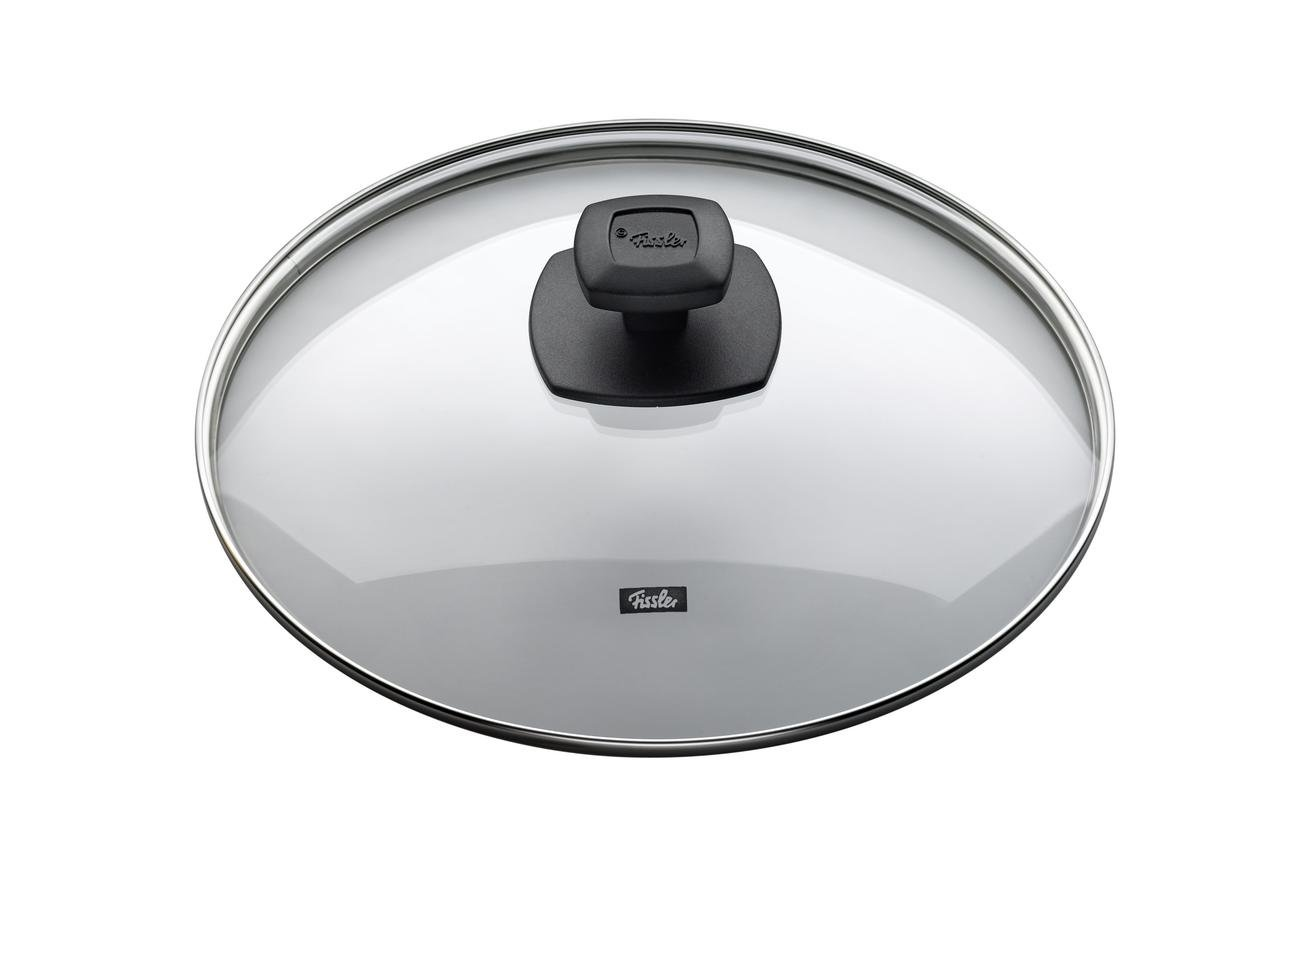 Fissler with System, 20 cm 175 000 20 200